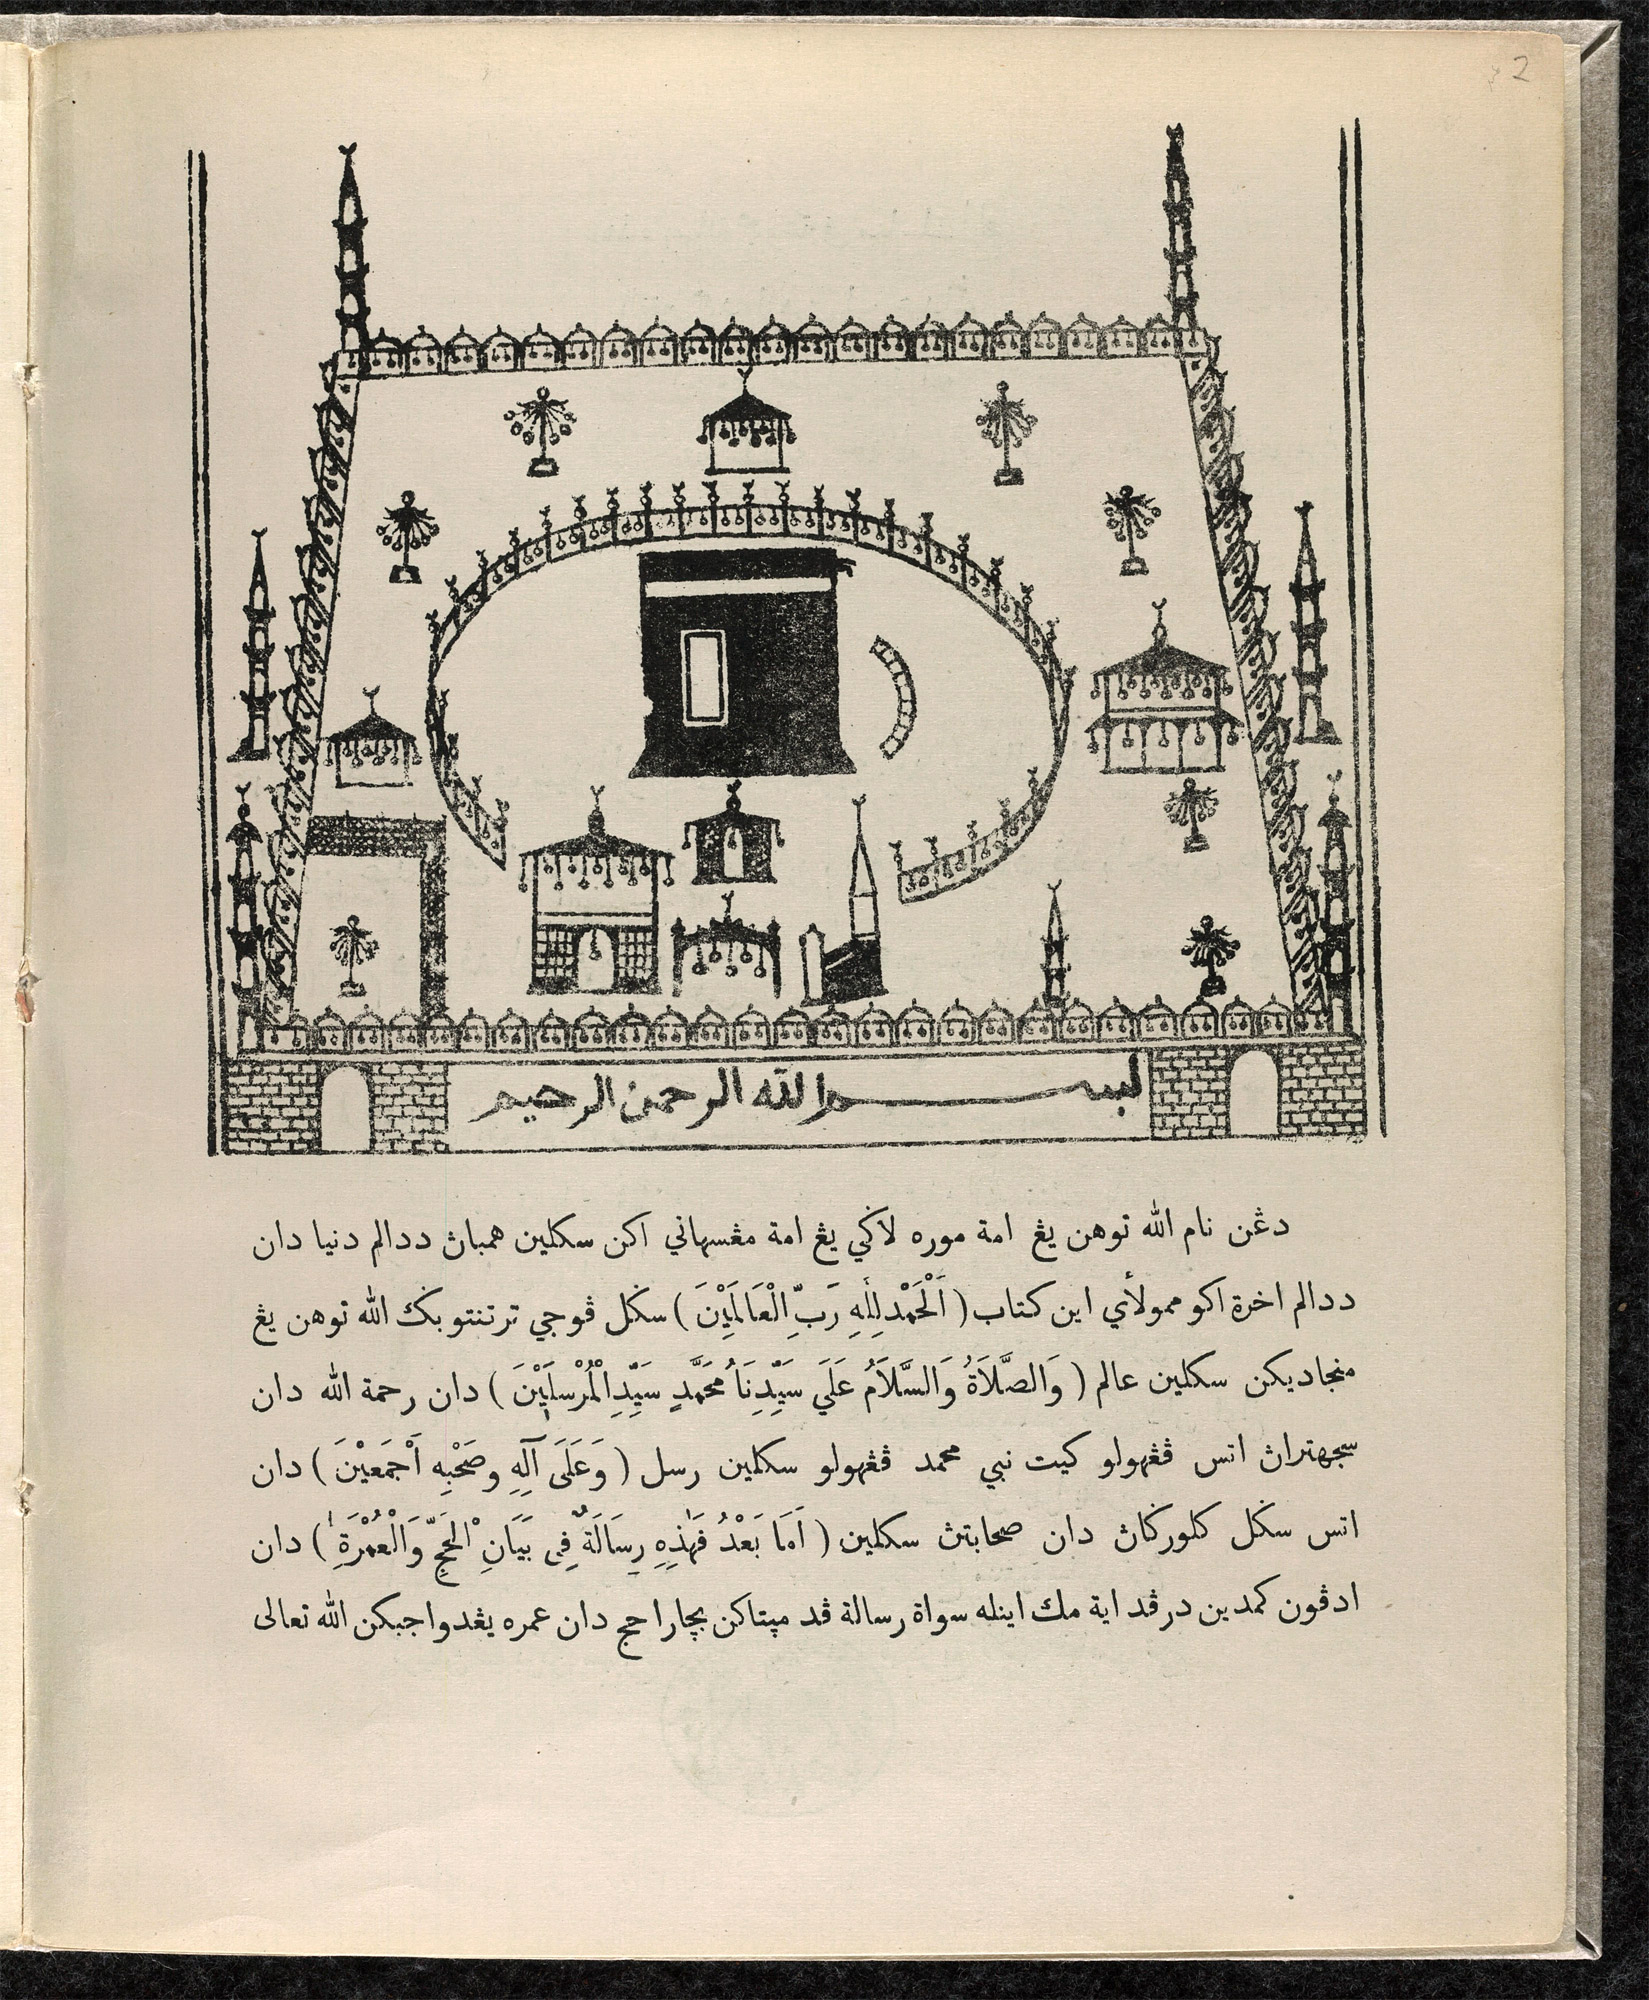 Depiction of the Ka'bah, illustration from Malay work on Hajj, Singapore, 1900